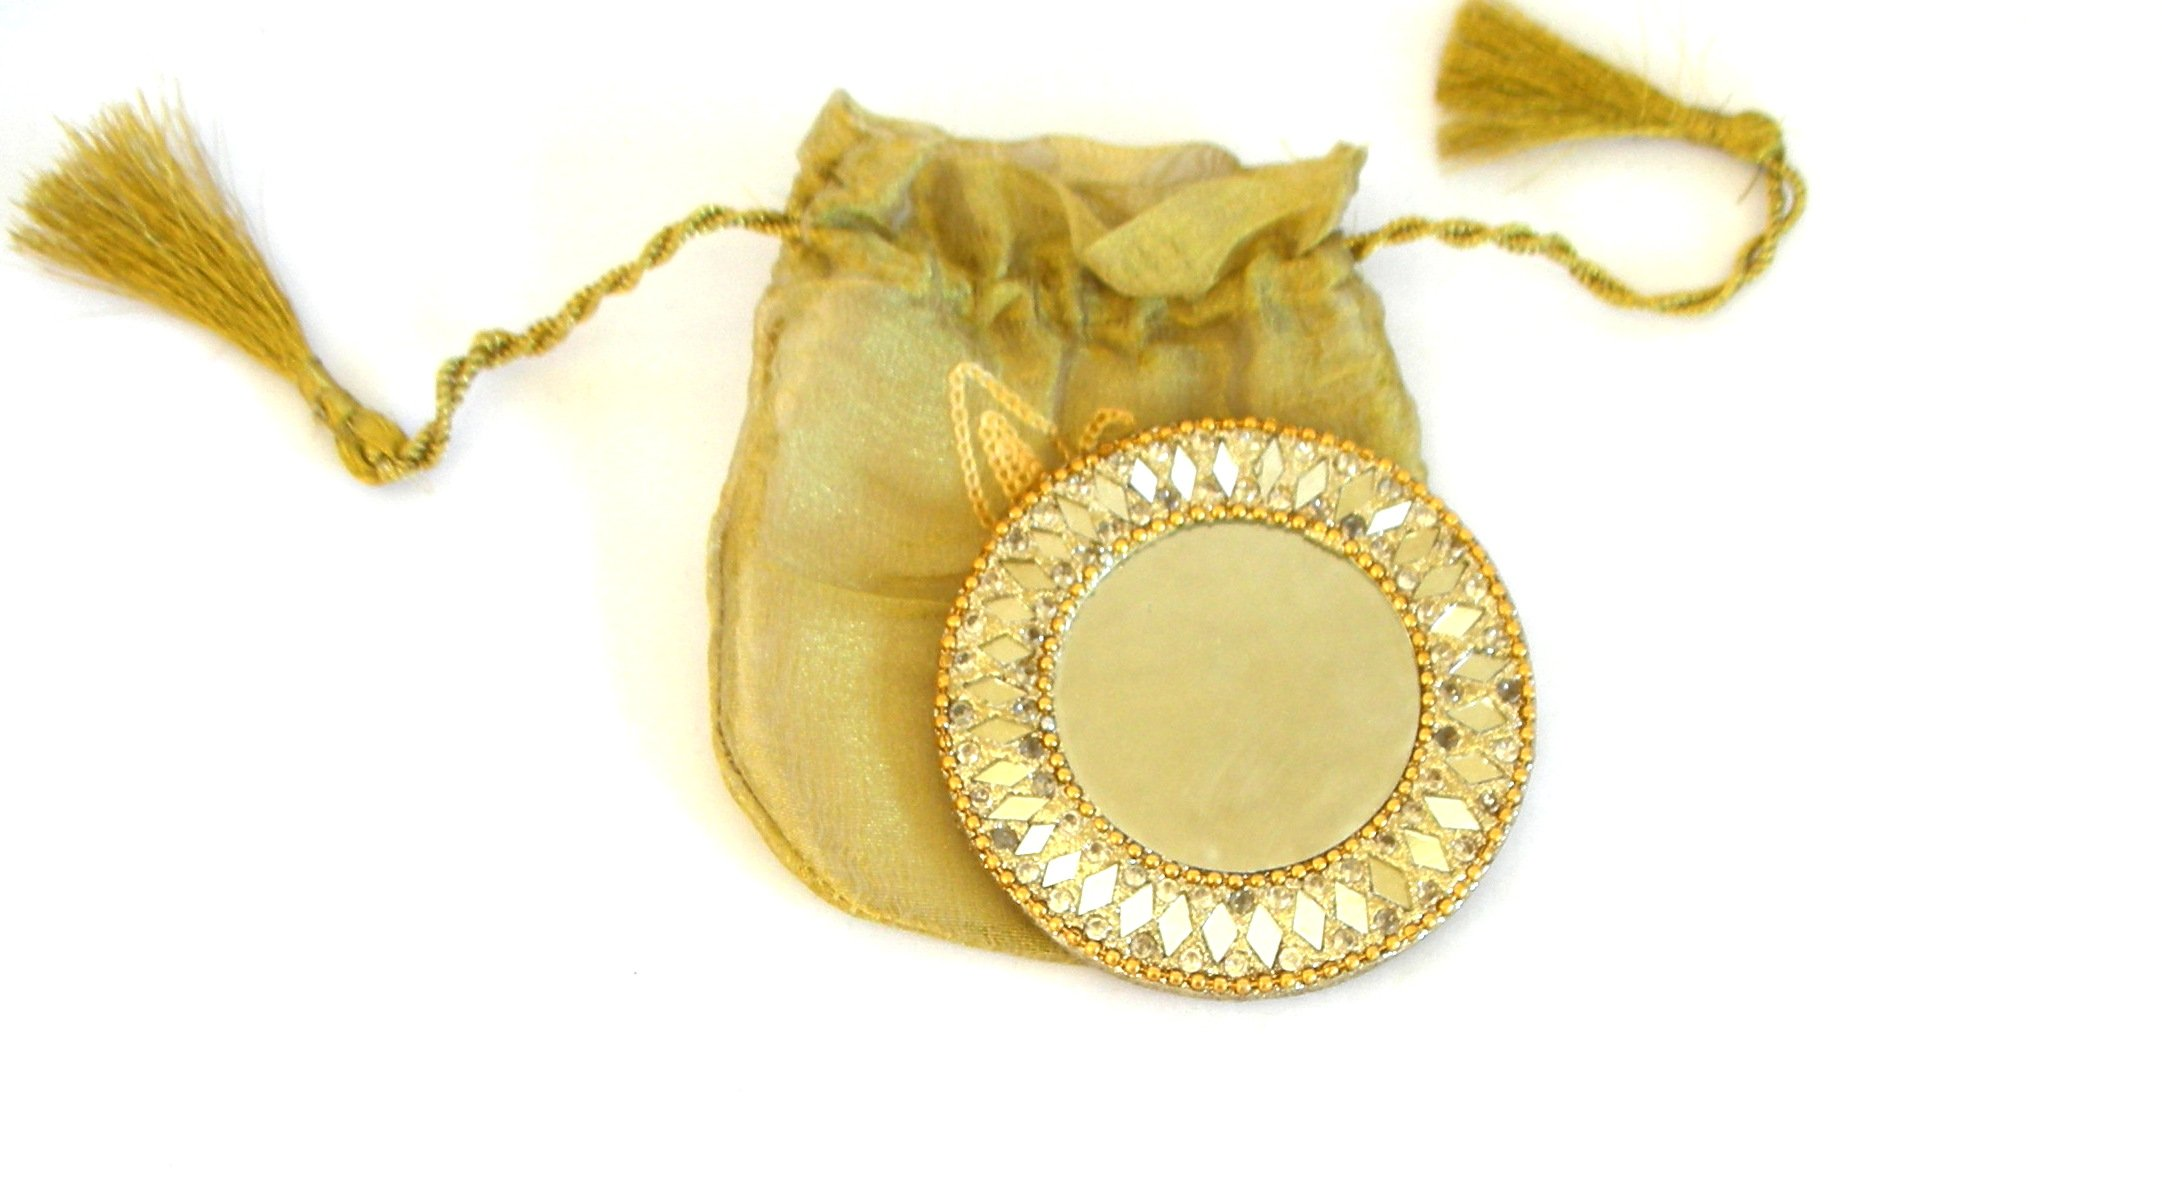 Handmade Gold Compact Mirror with Beads in a Gift Bag